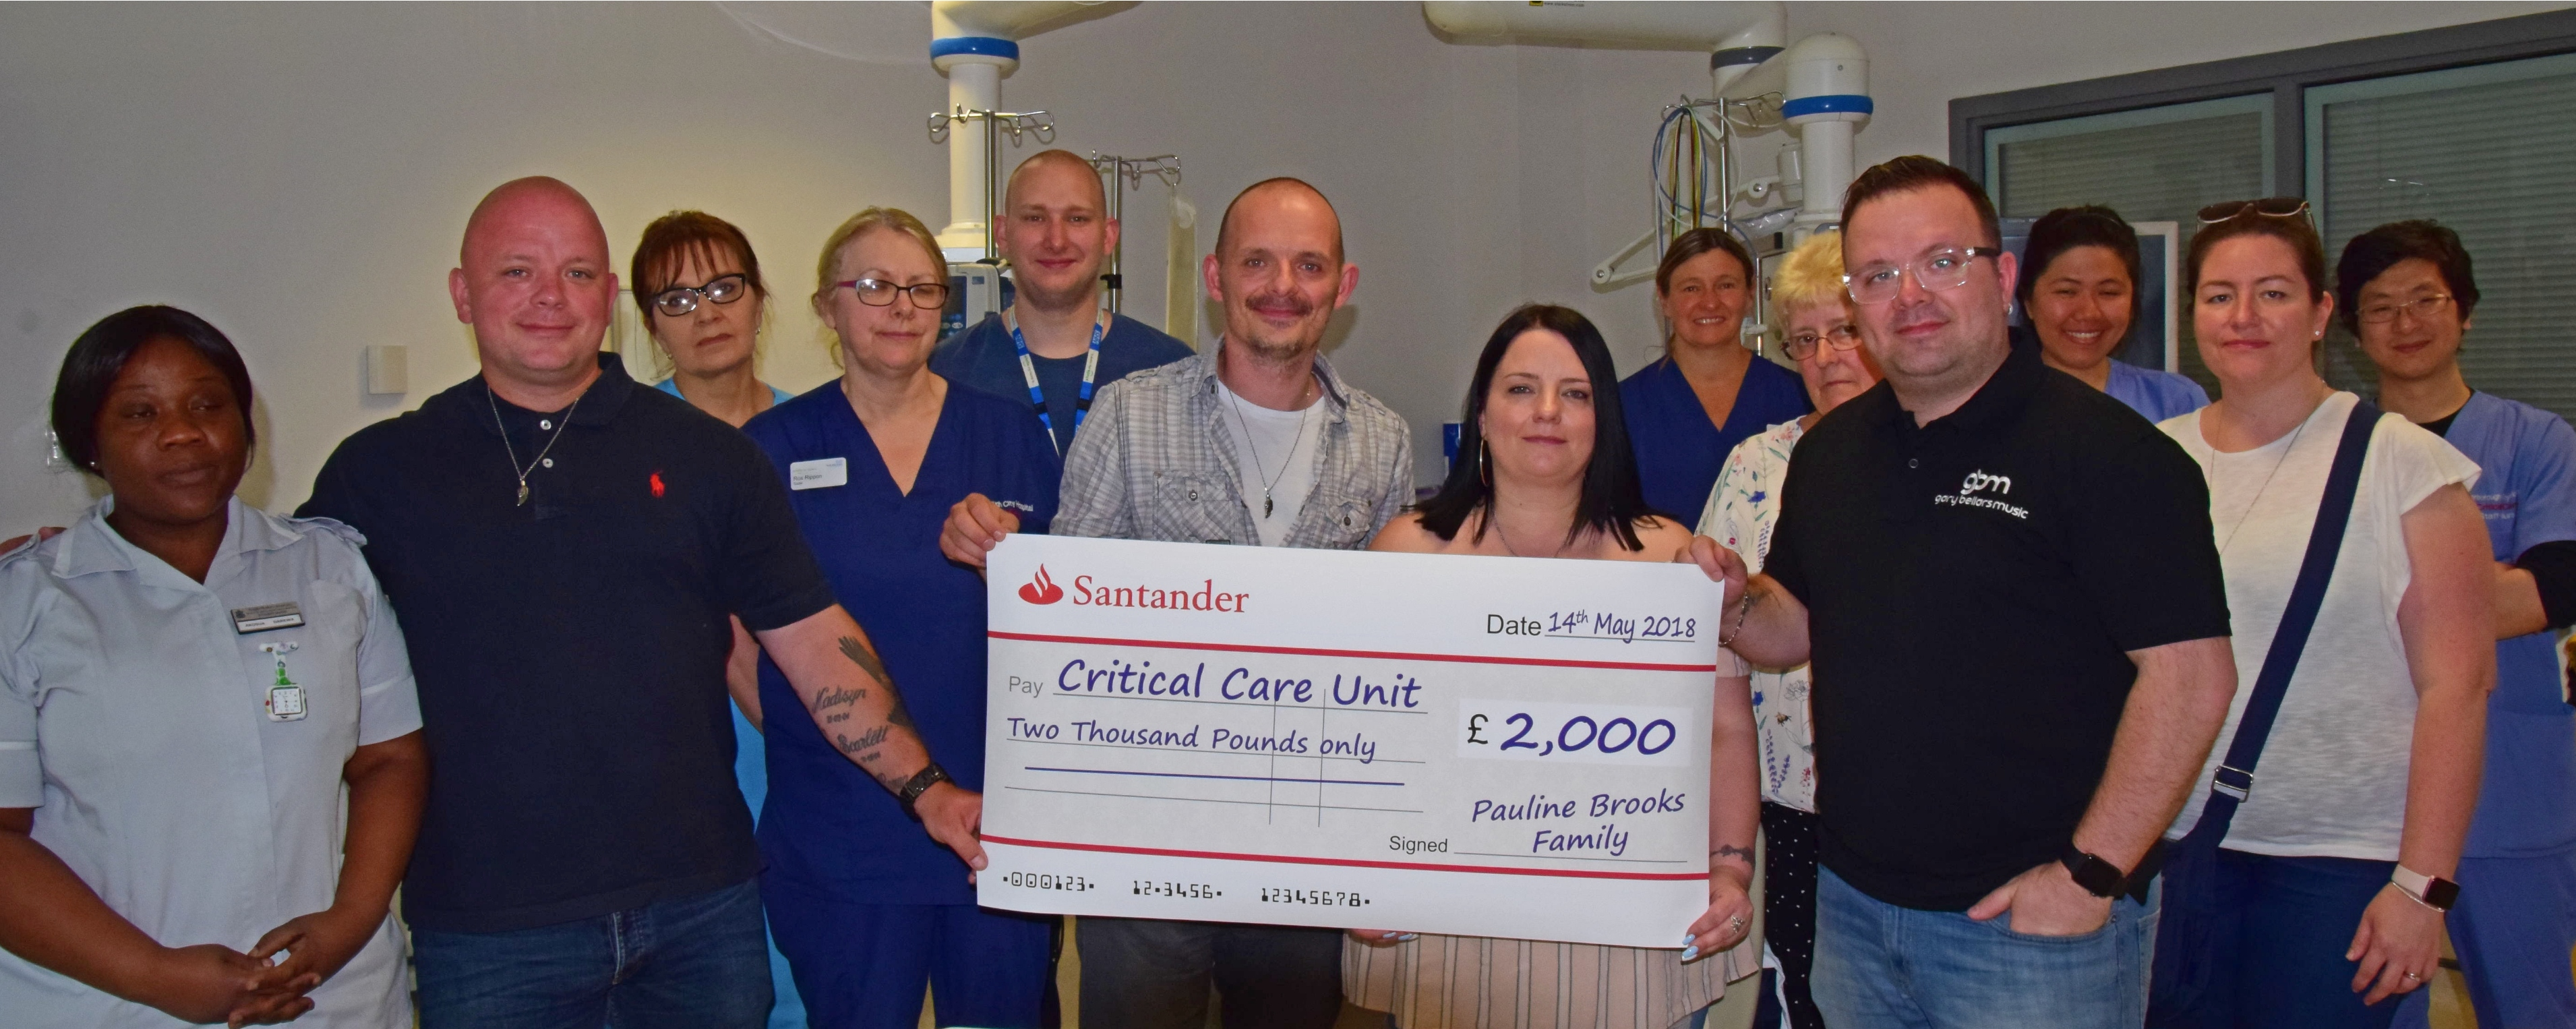 Family present cheque to staff on Critical Care